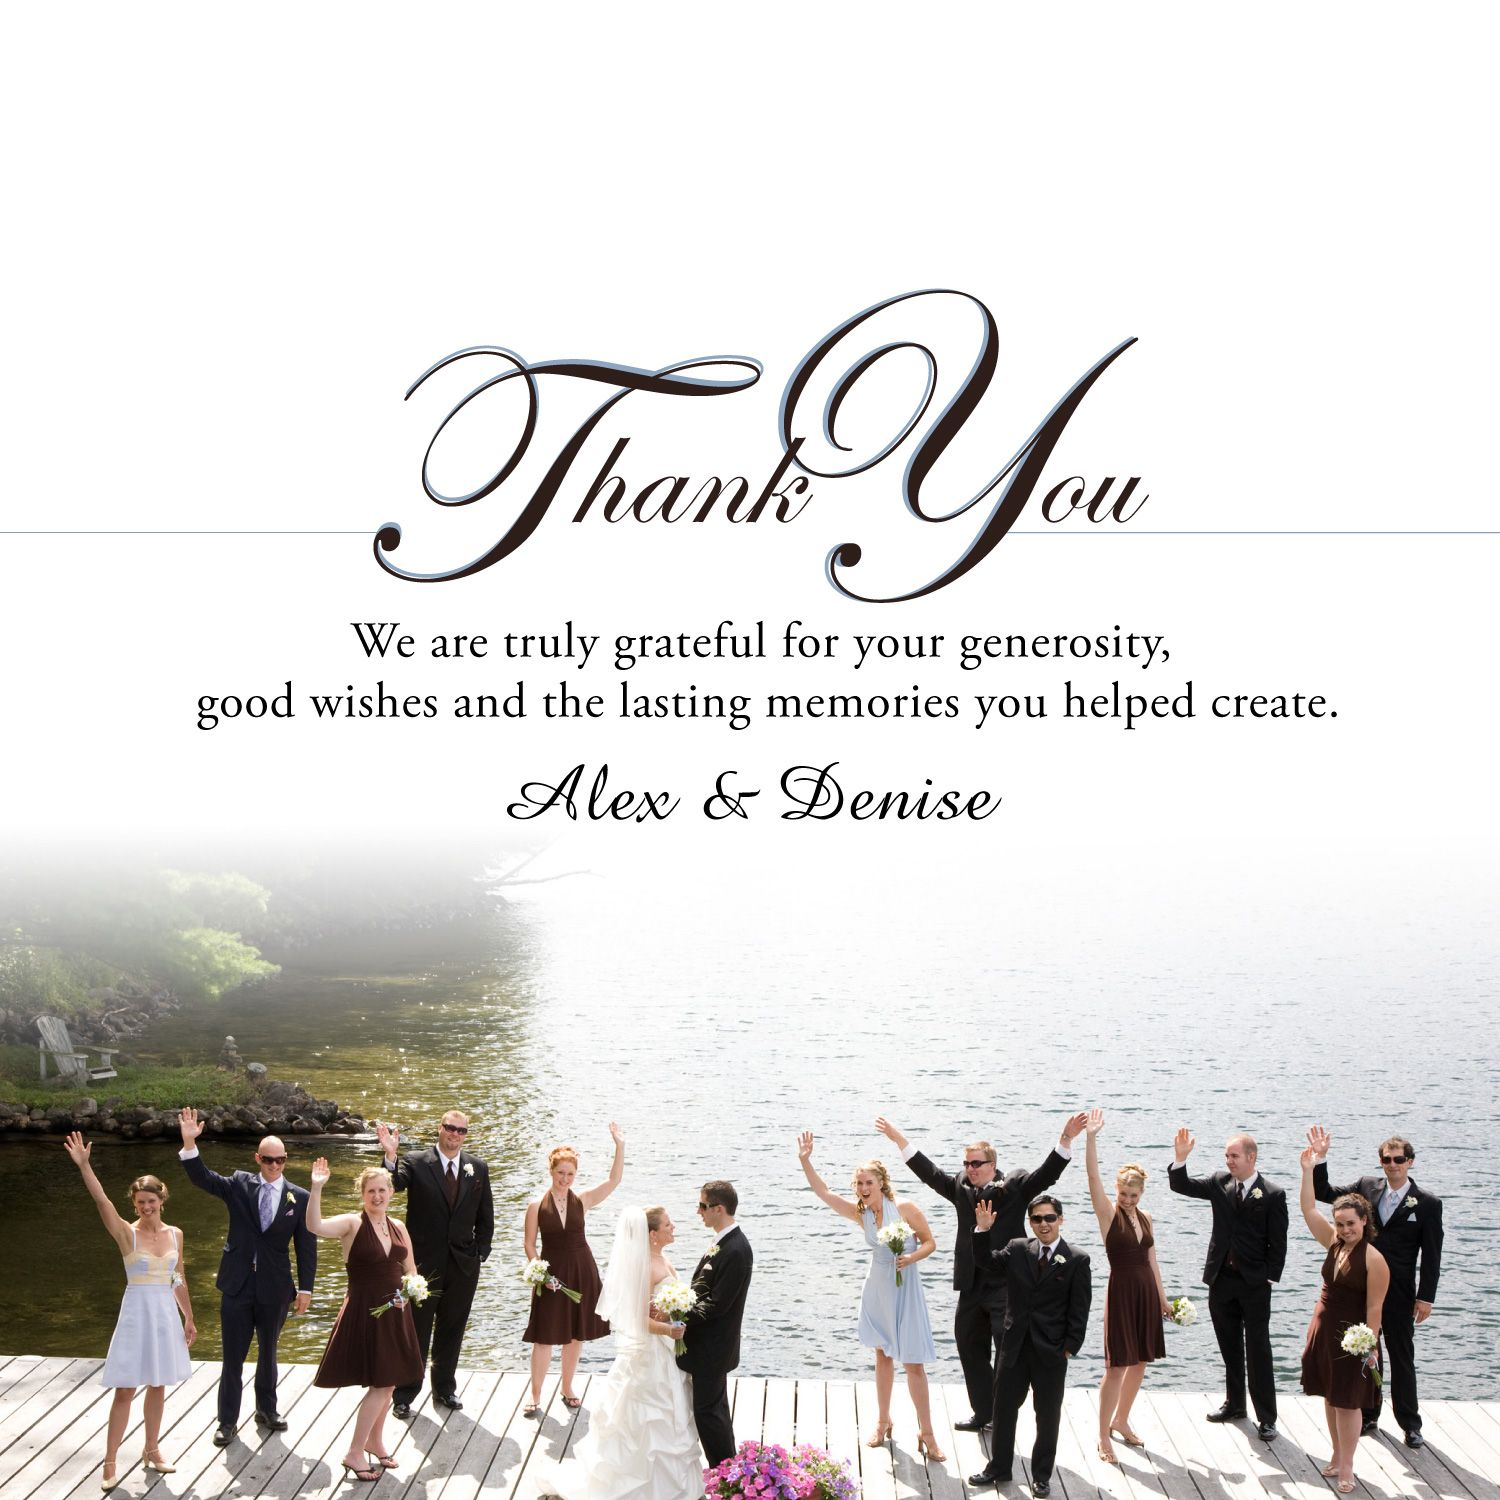 Wedding Thank You Cards in a hurry Authenticity Card